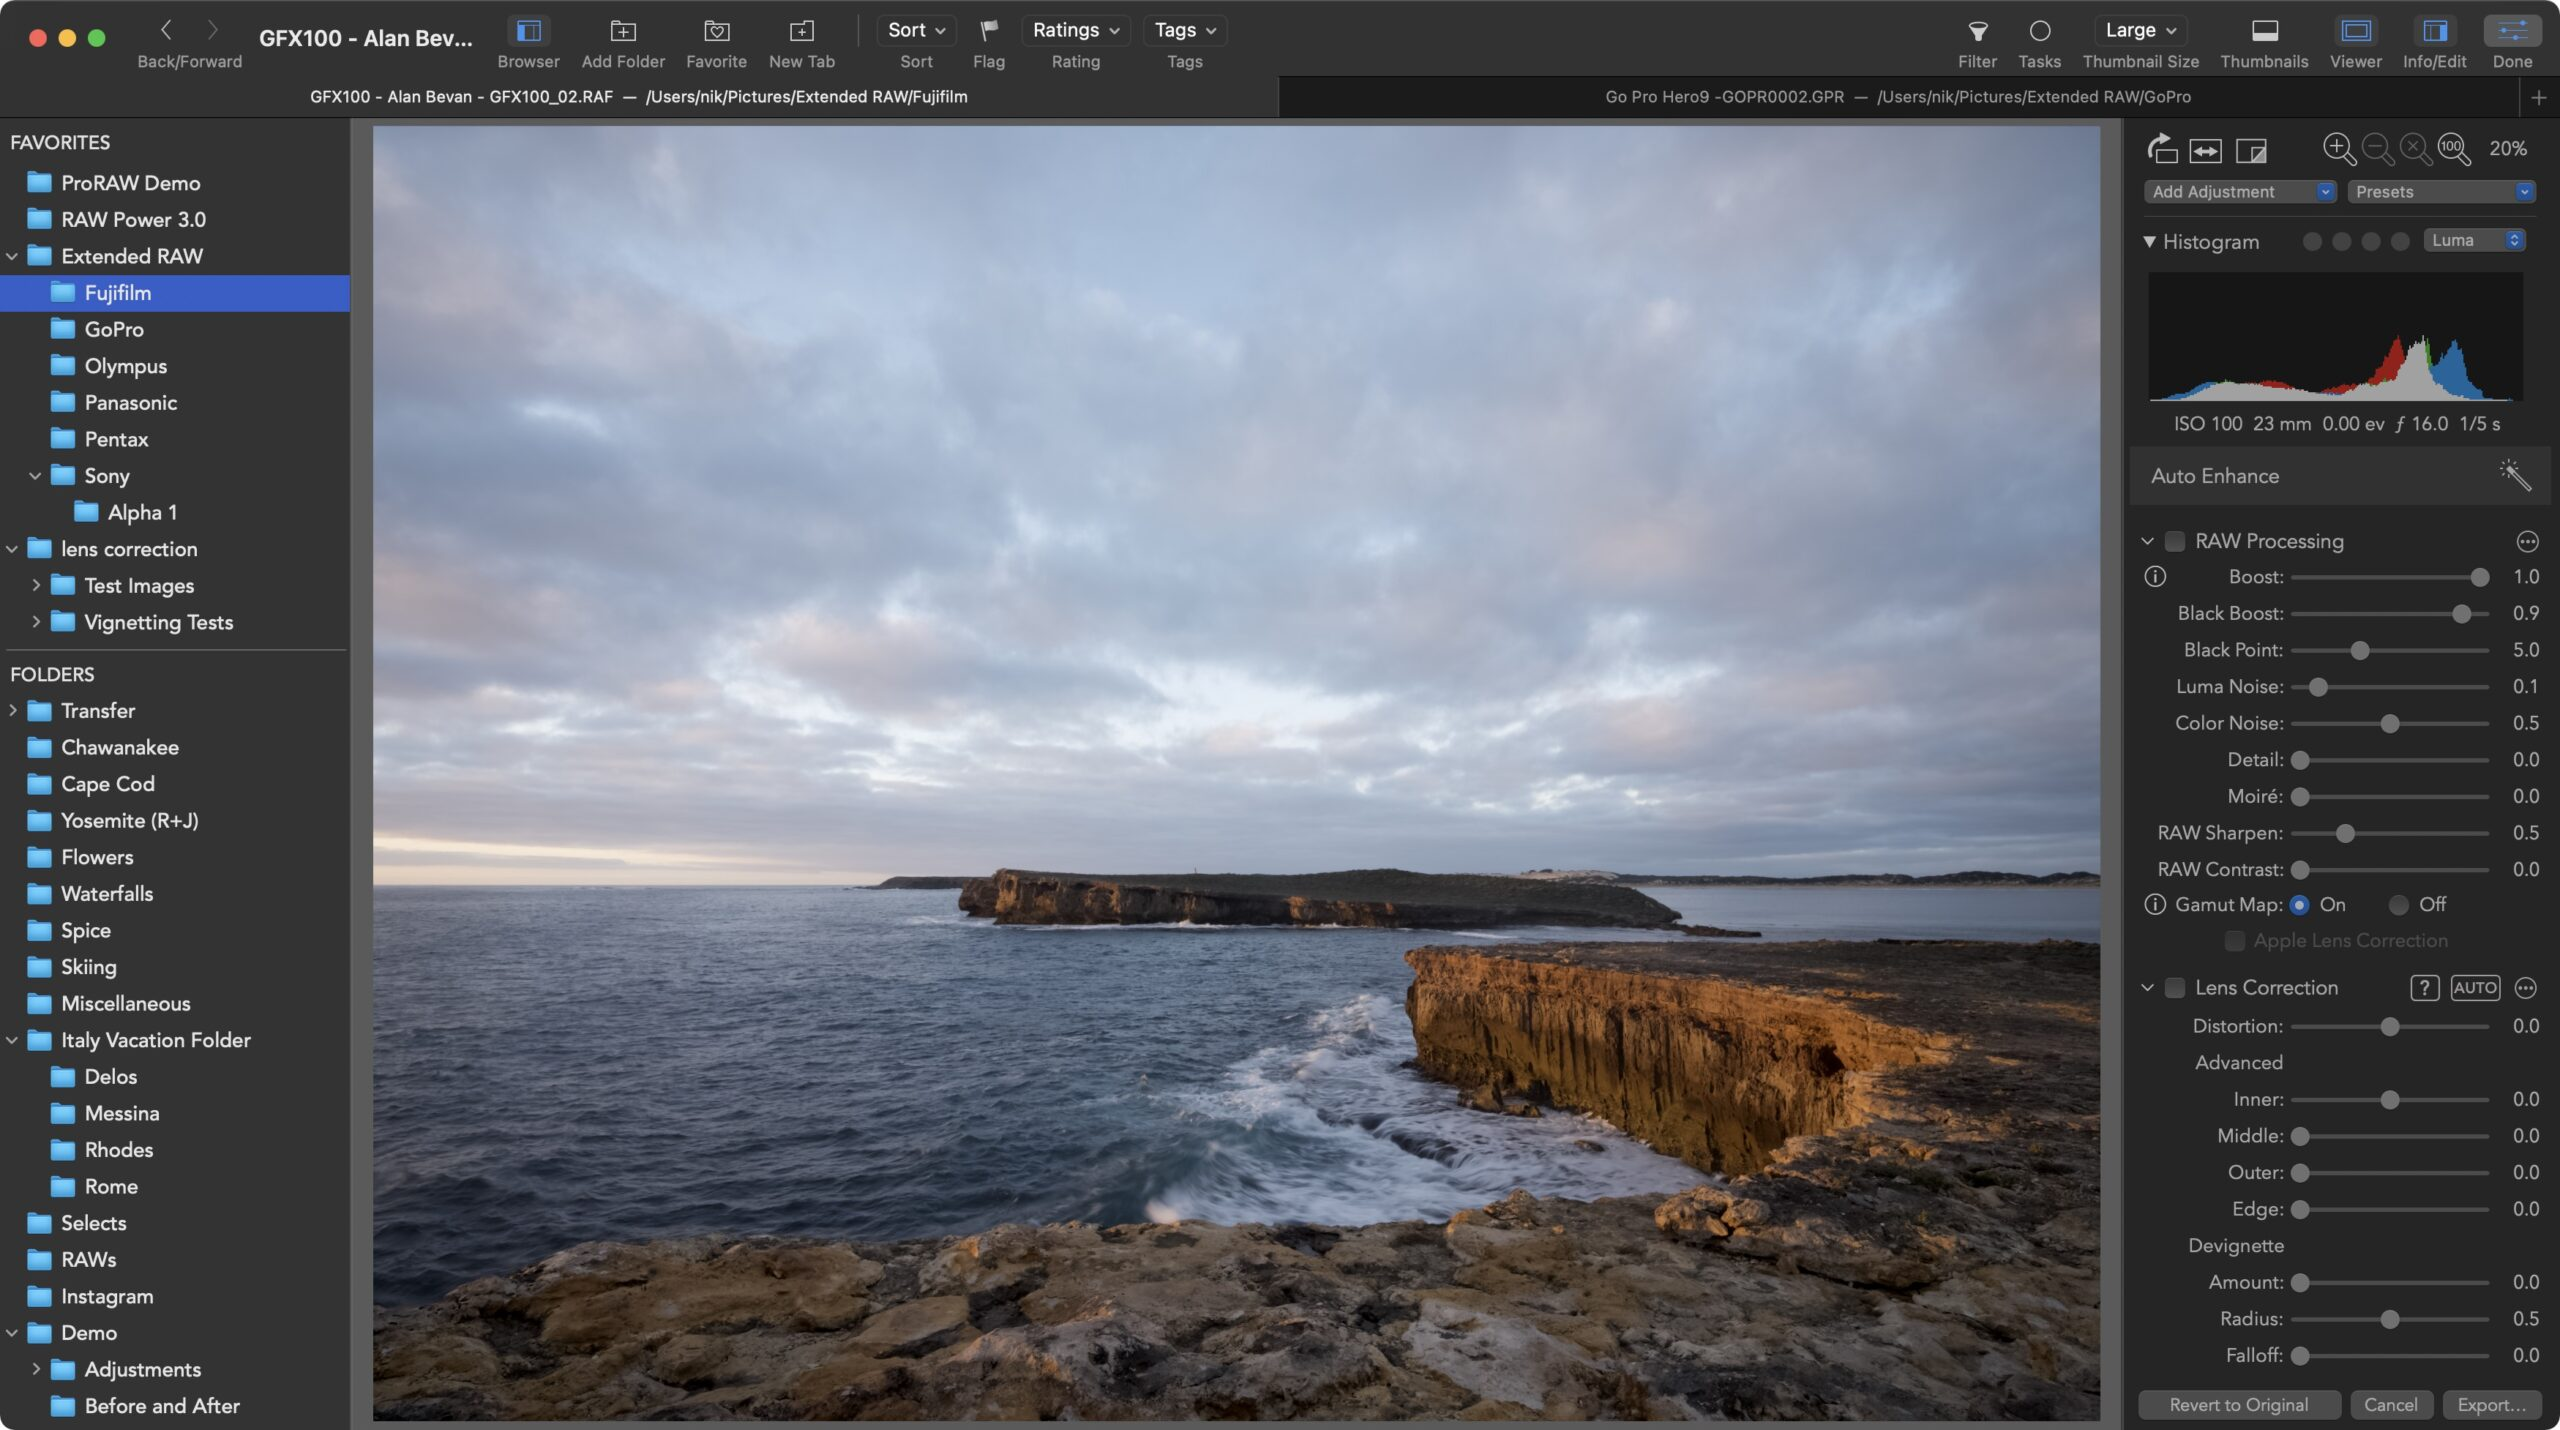 Here is Extended RAW in action showing a Fujifilm GFX100 image with full RAW editing sliders